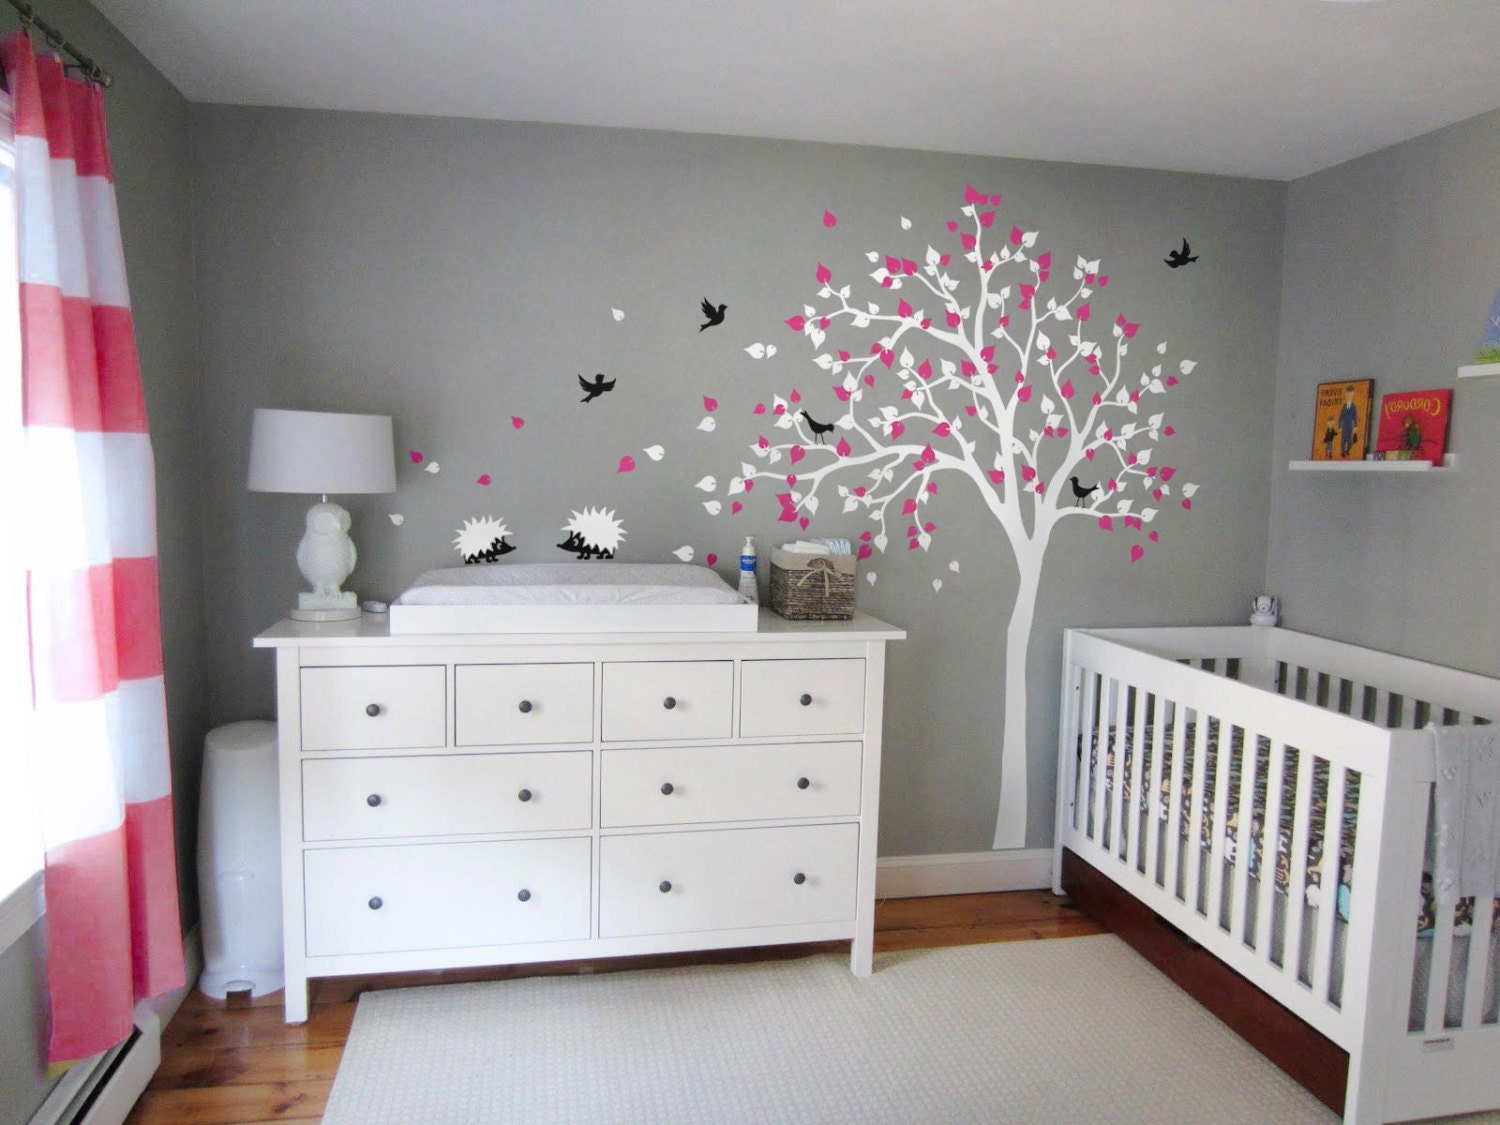 Moderne baby kinderzimmer wand baum decal kinder for Moderne kinderzimmer